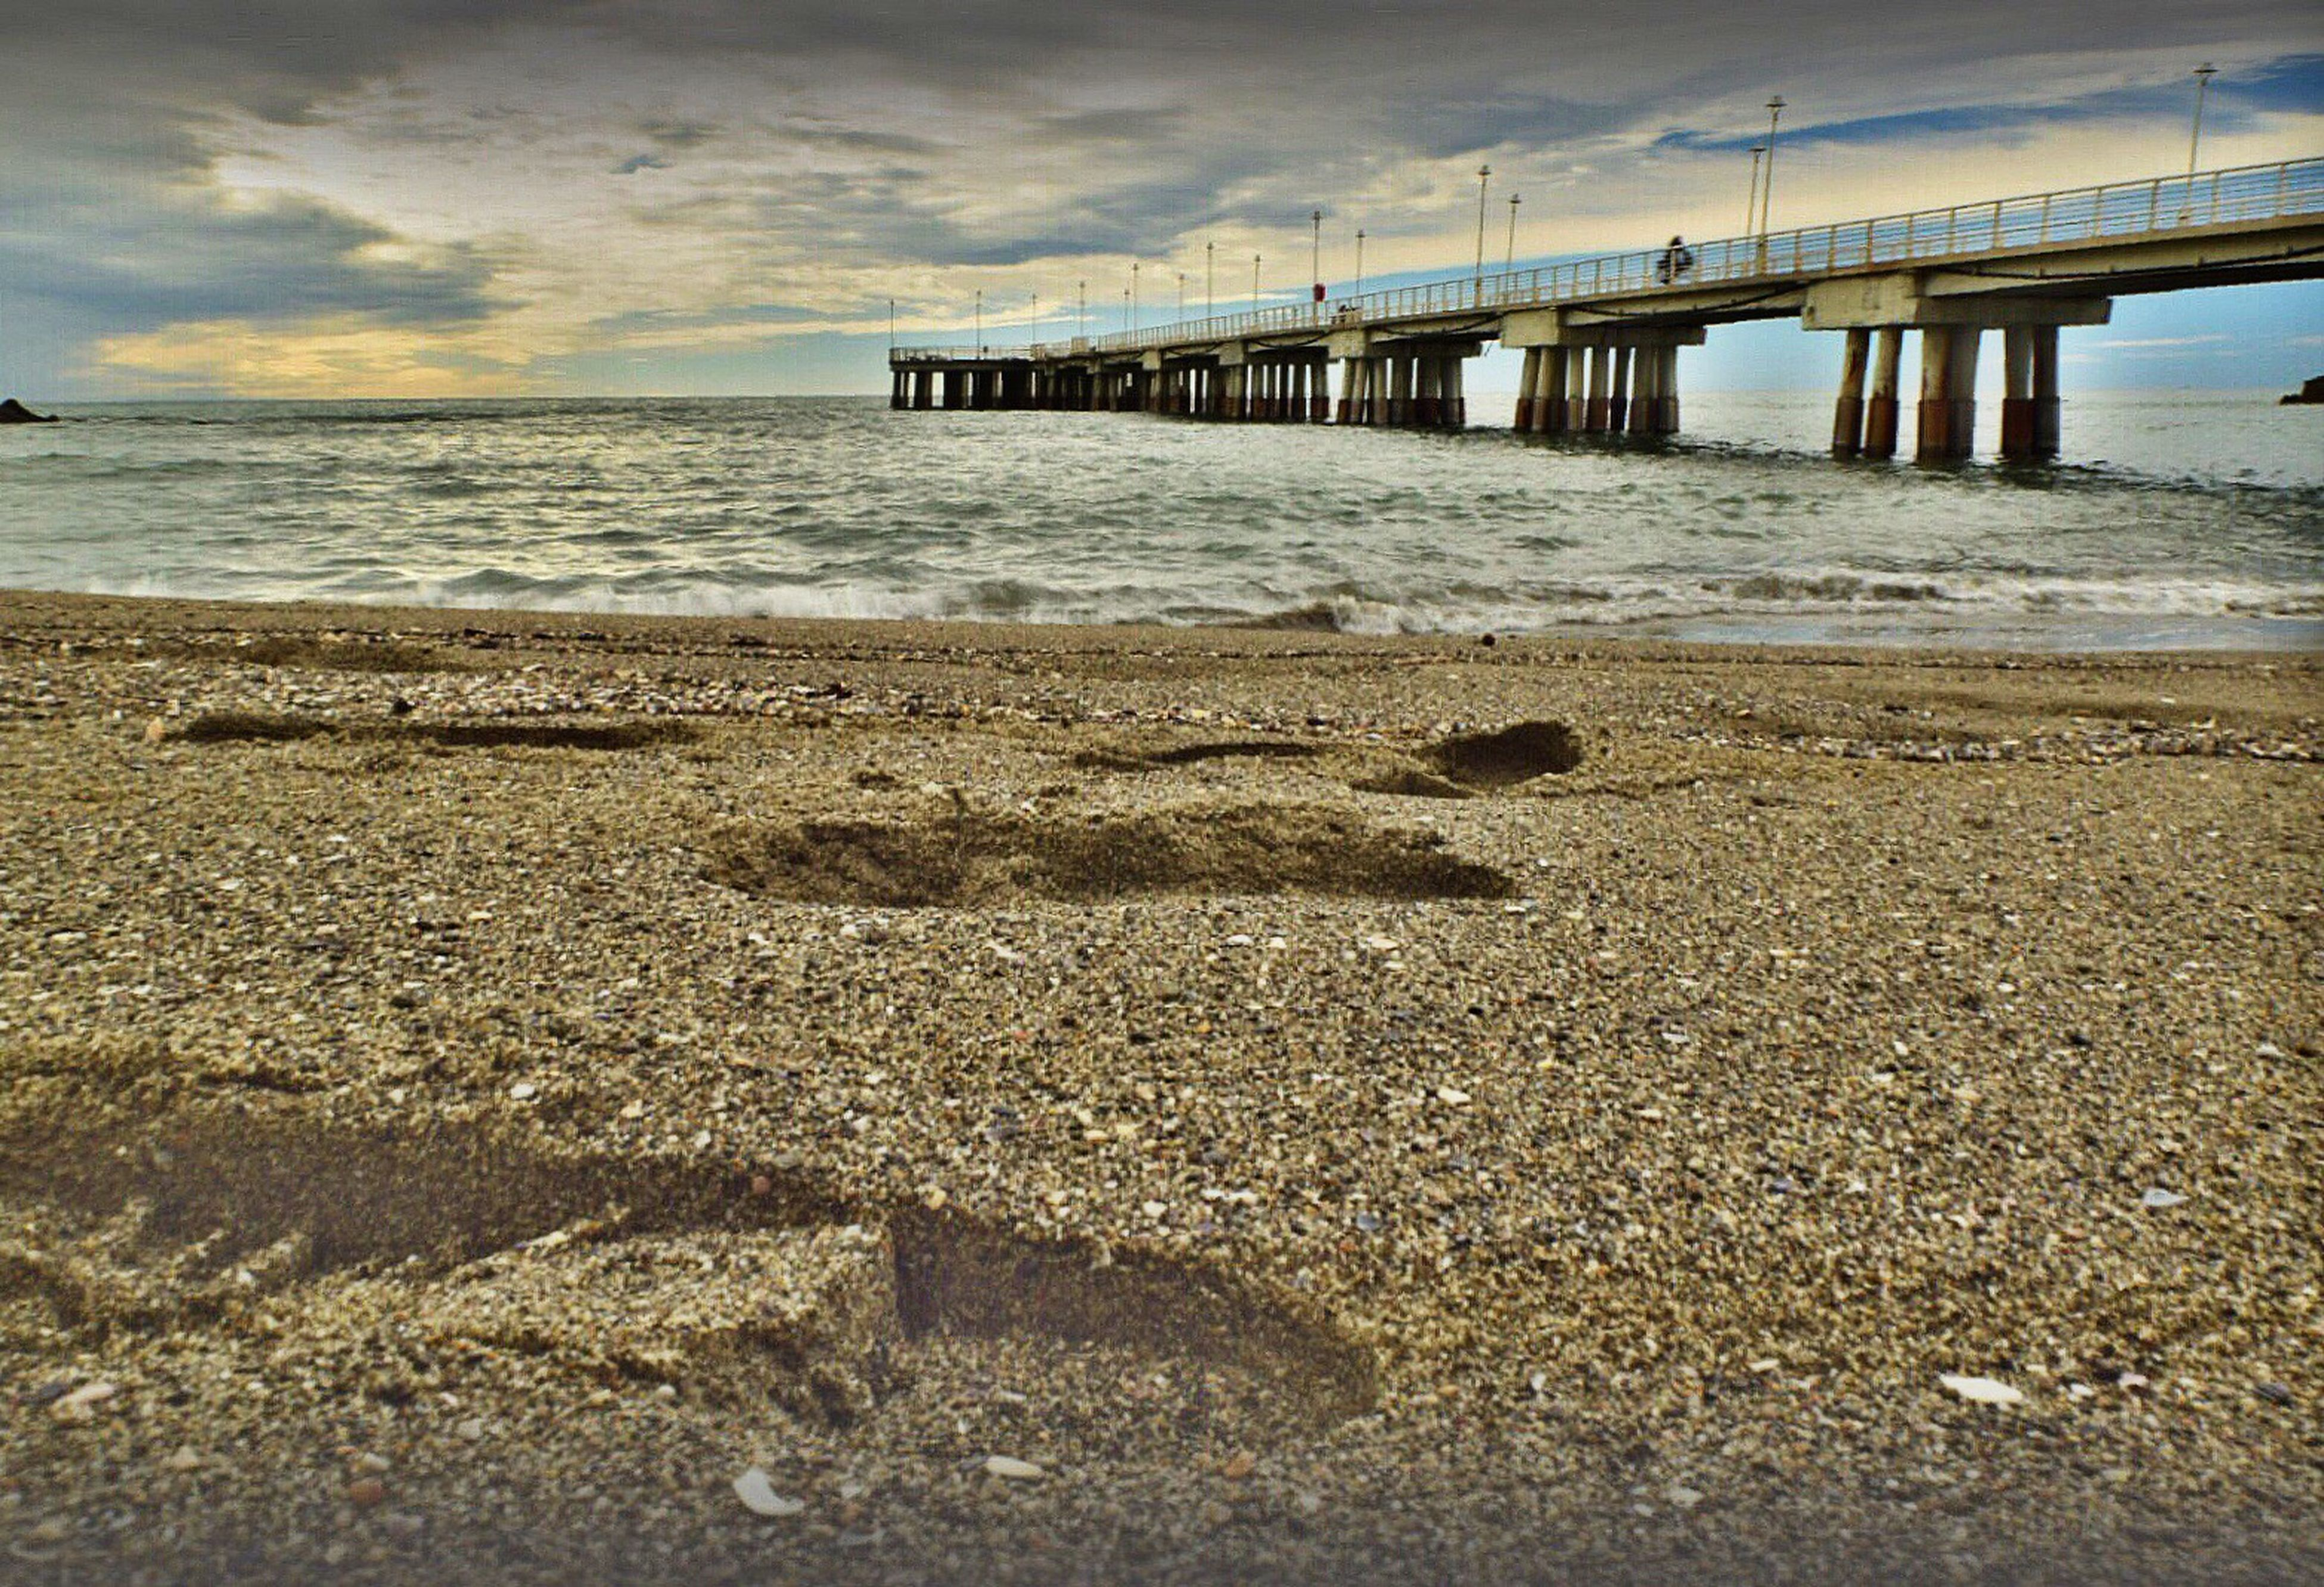 sea, water, beach, sky, sand, shore, horizon over water, cloud - sky, built structure, tranquility, tranquil scene, scenics, pier, wave, architecture, cloud, nature, cloudy, beauty in nature, coastline